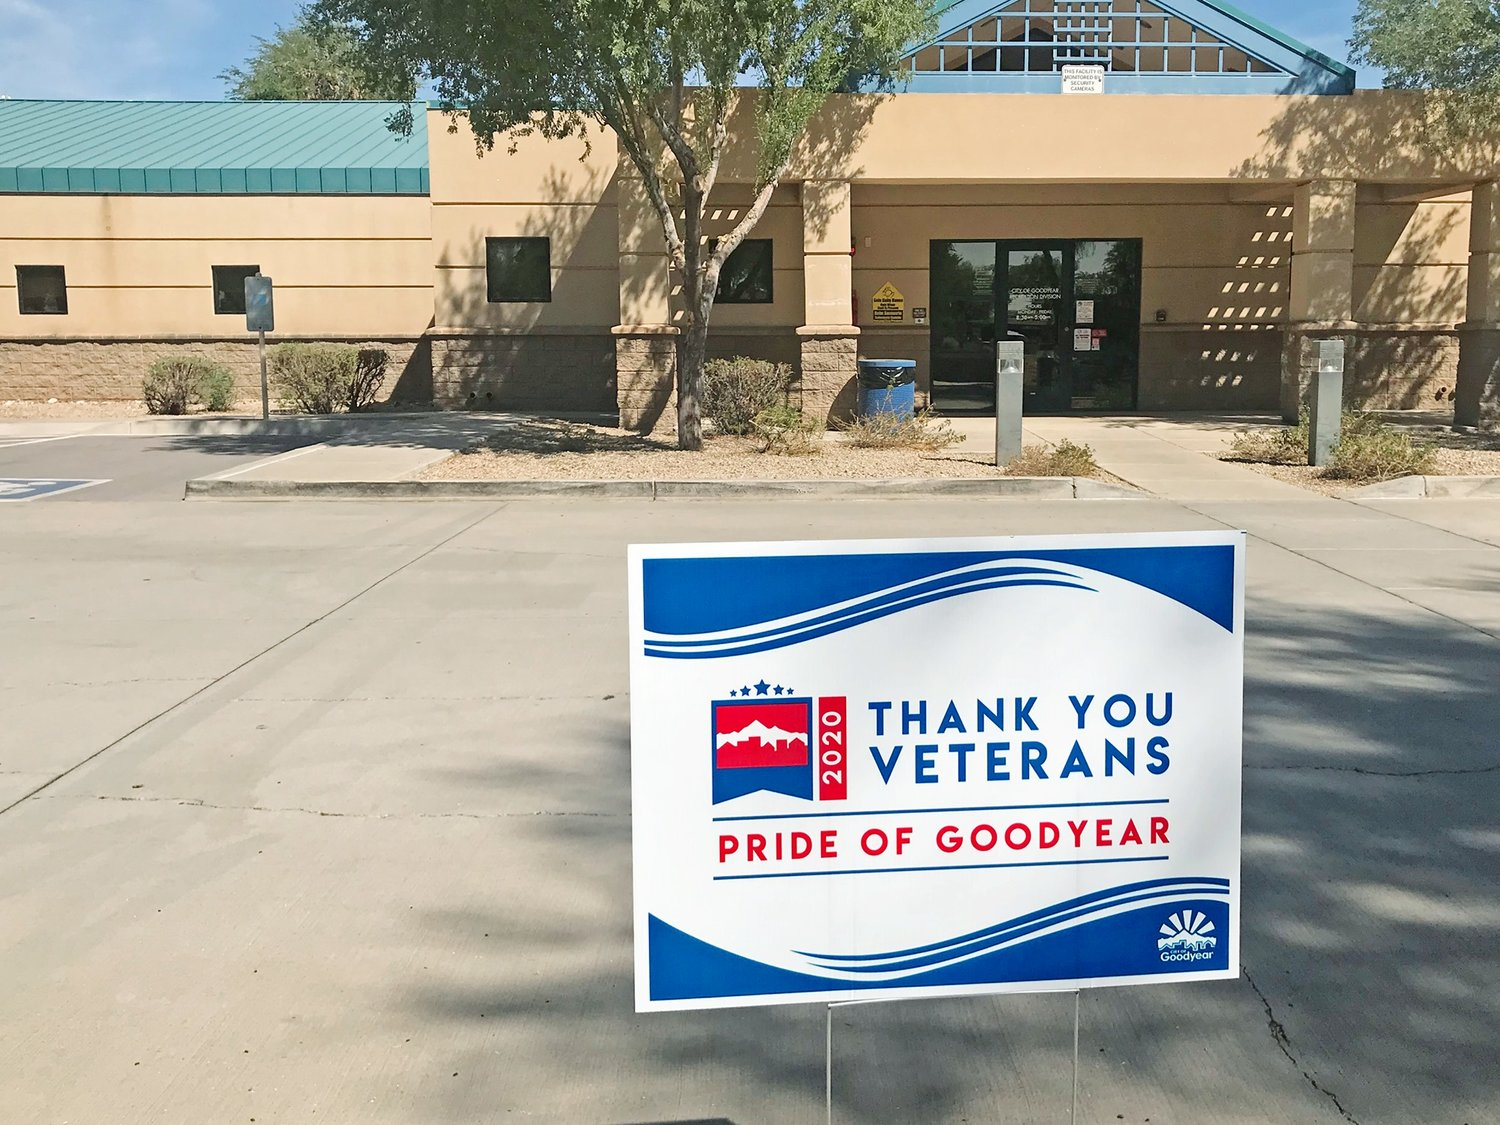 Signs like this one at the Goodyear Recreation Office are popping up all over the city as part of Goodyear's COVID-compliant Veterans Day Tribute.